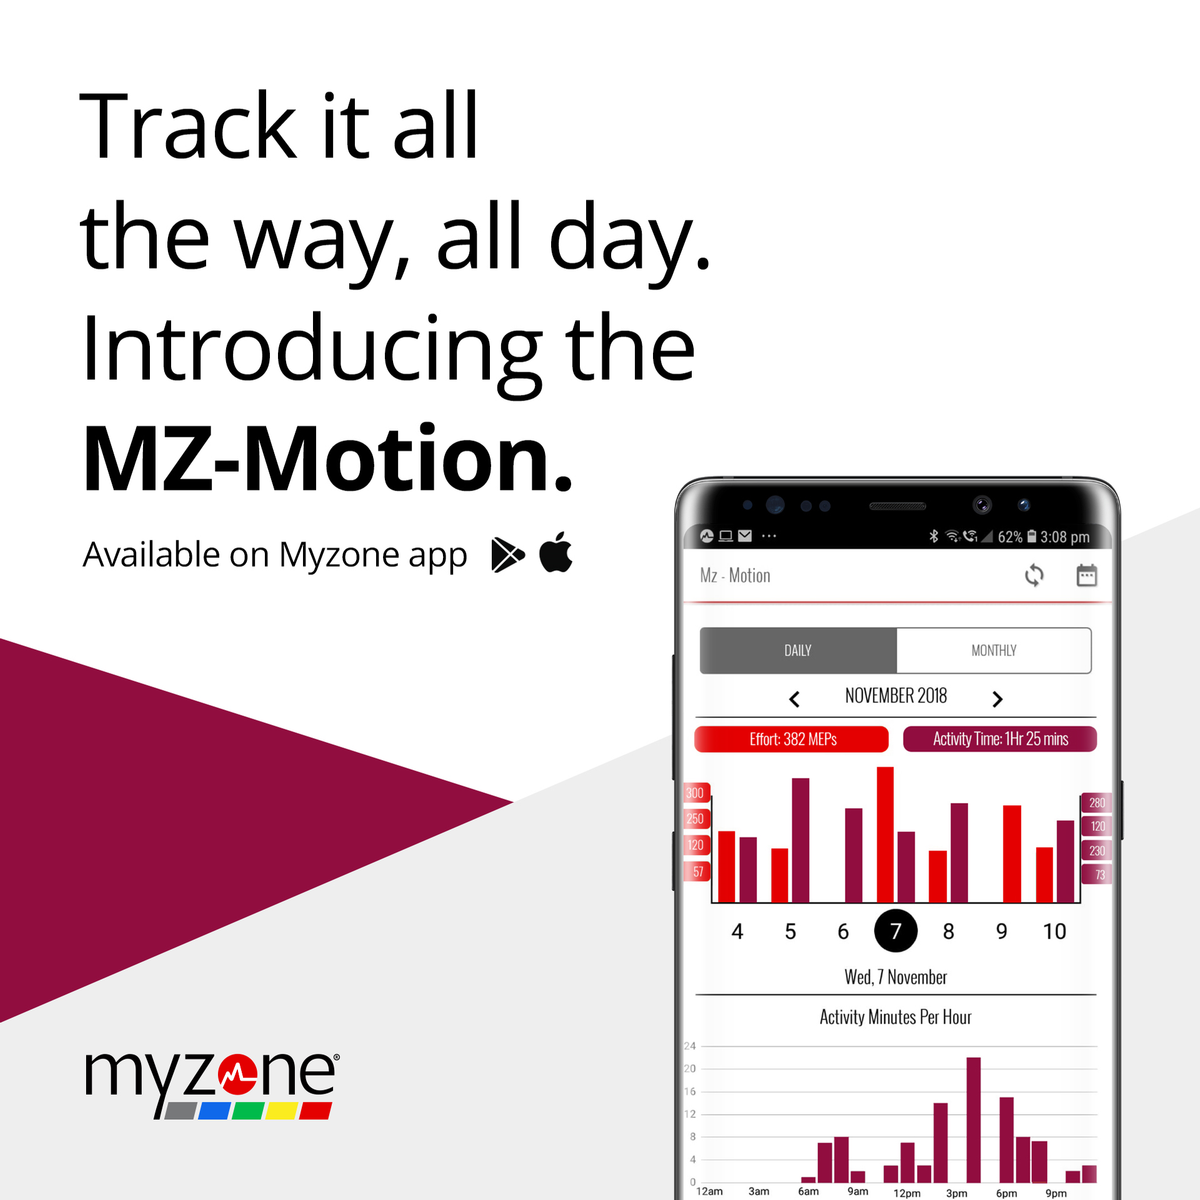 Track it all the way, all day. Introducing the MZ-Motion.